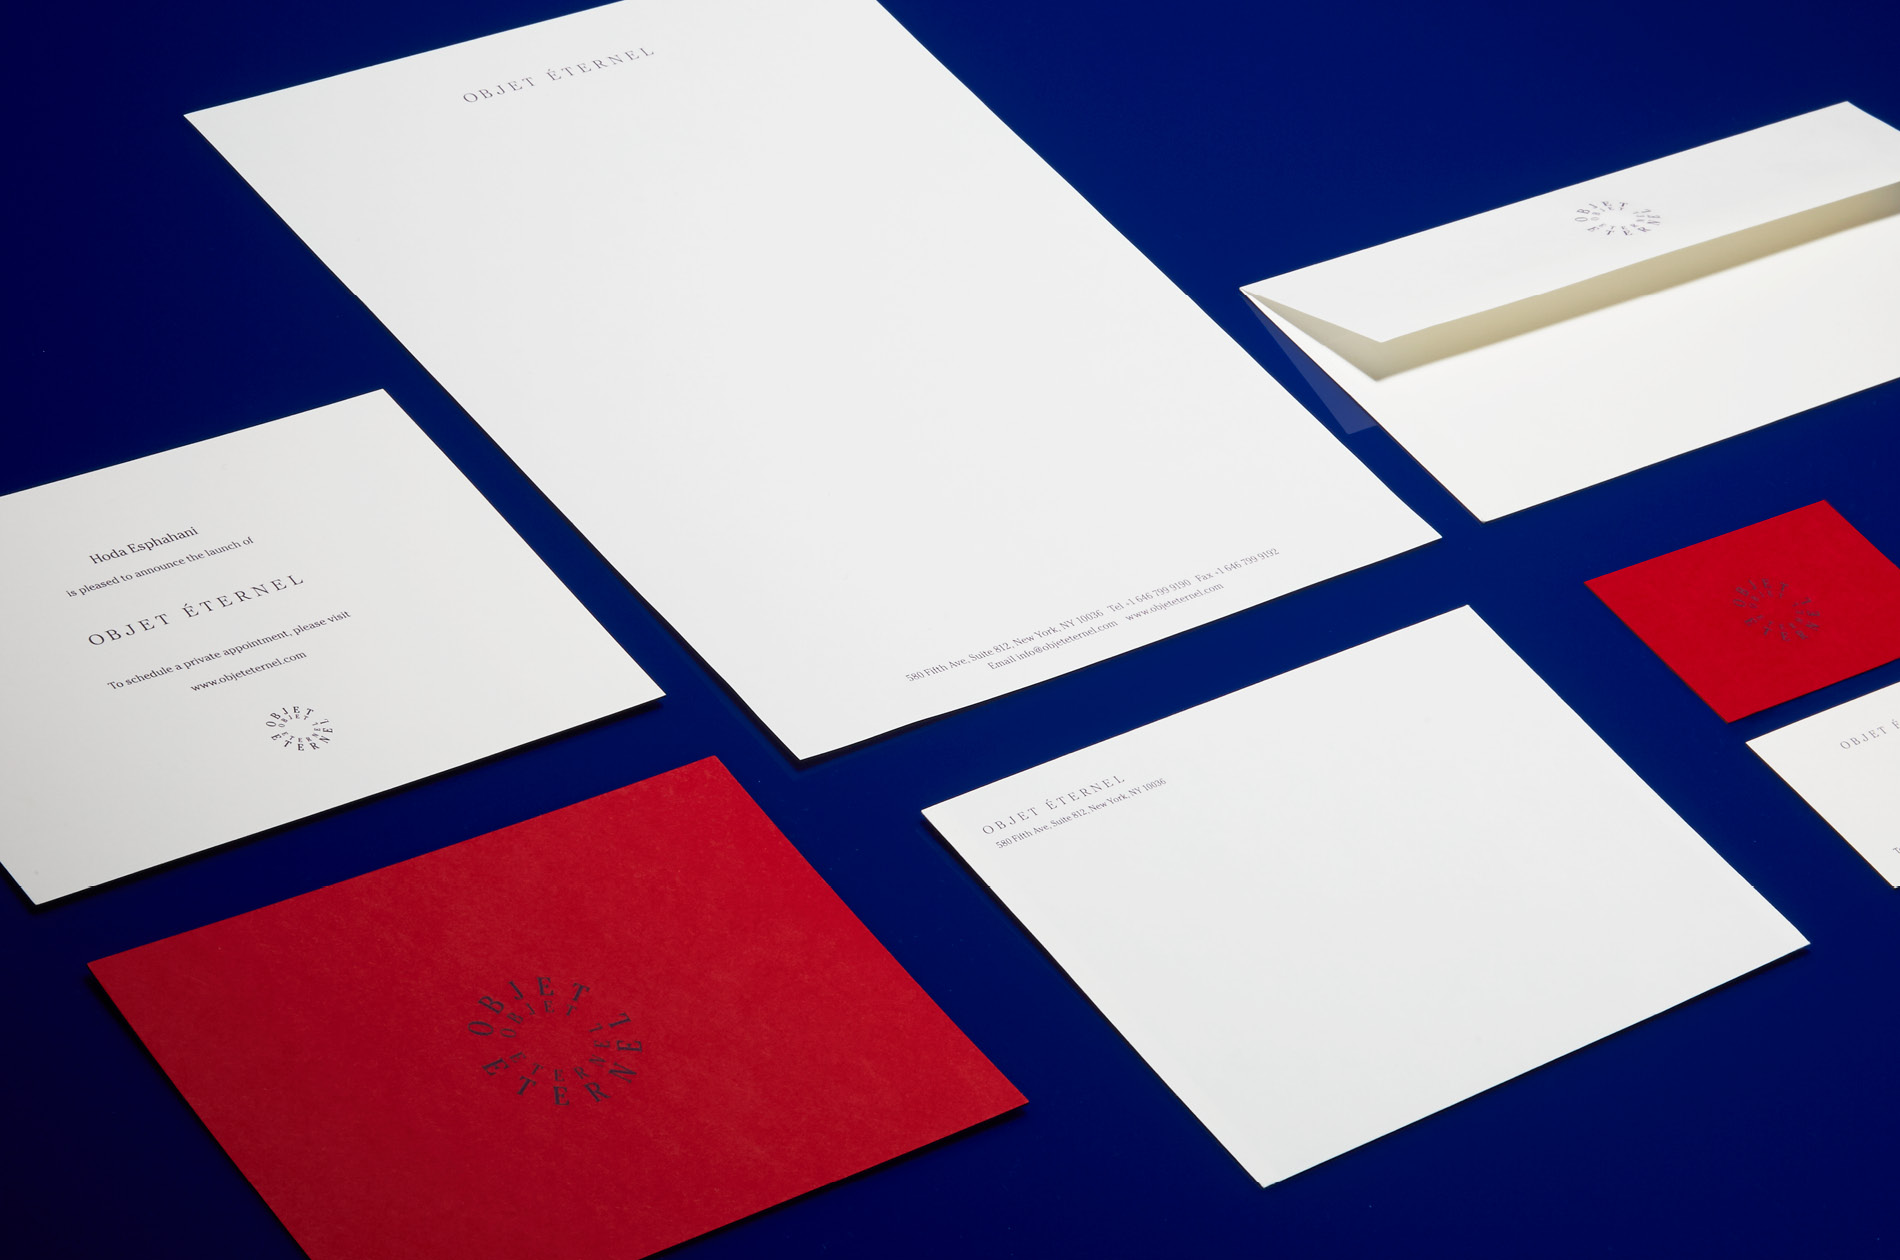 Still life photograph of Objet Eternel's new logo and stationary by DTE Studio.